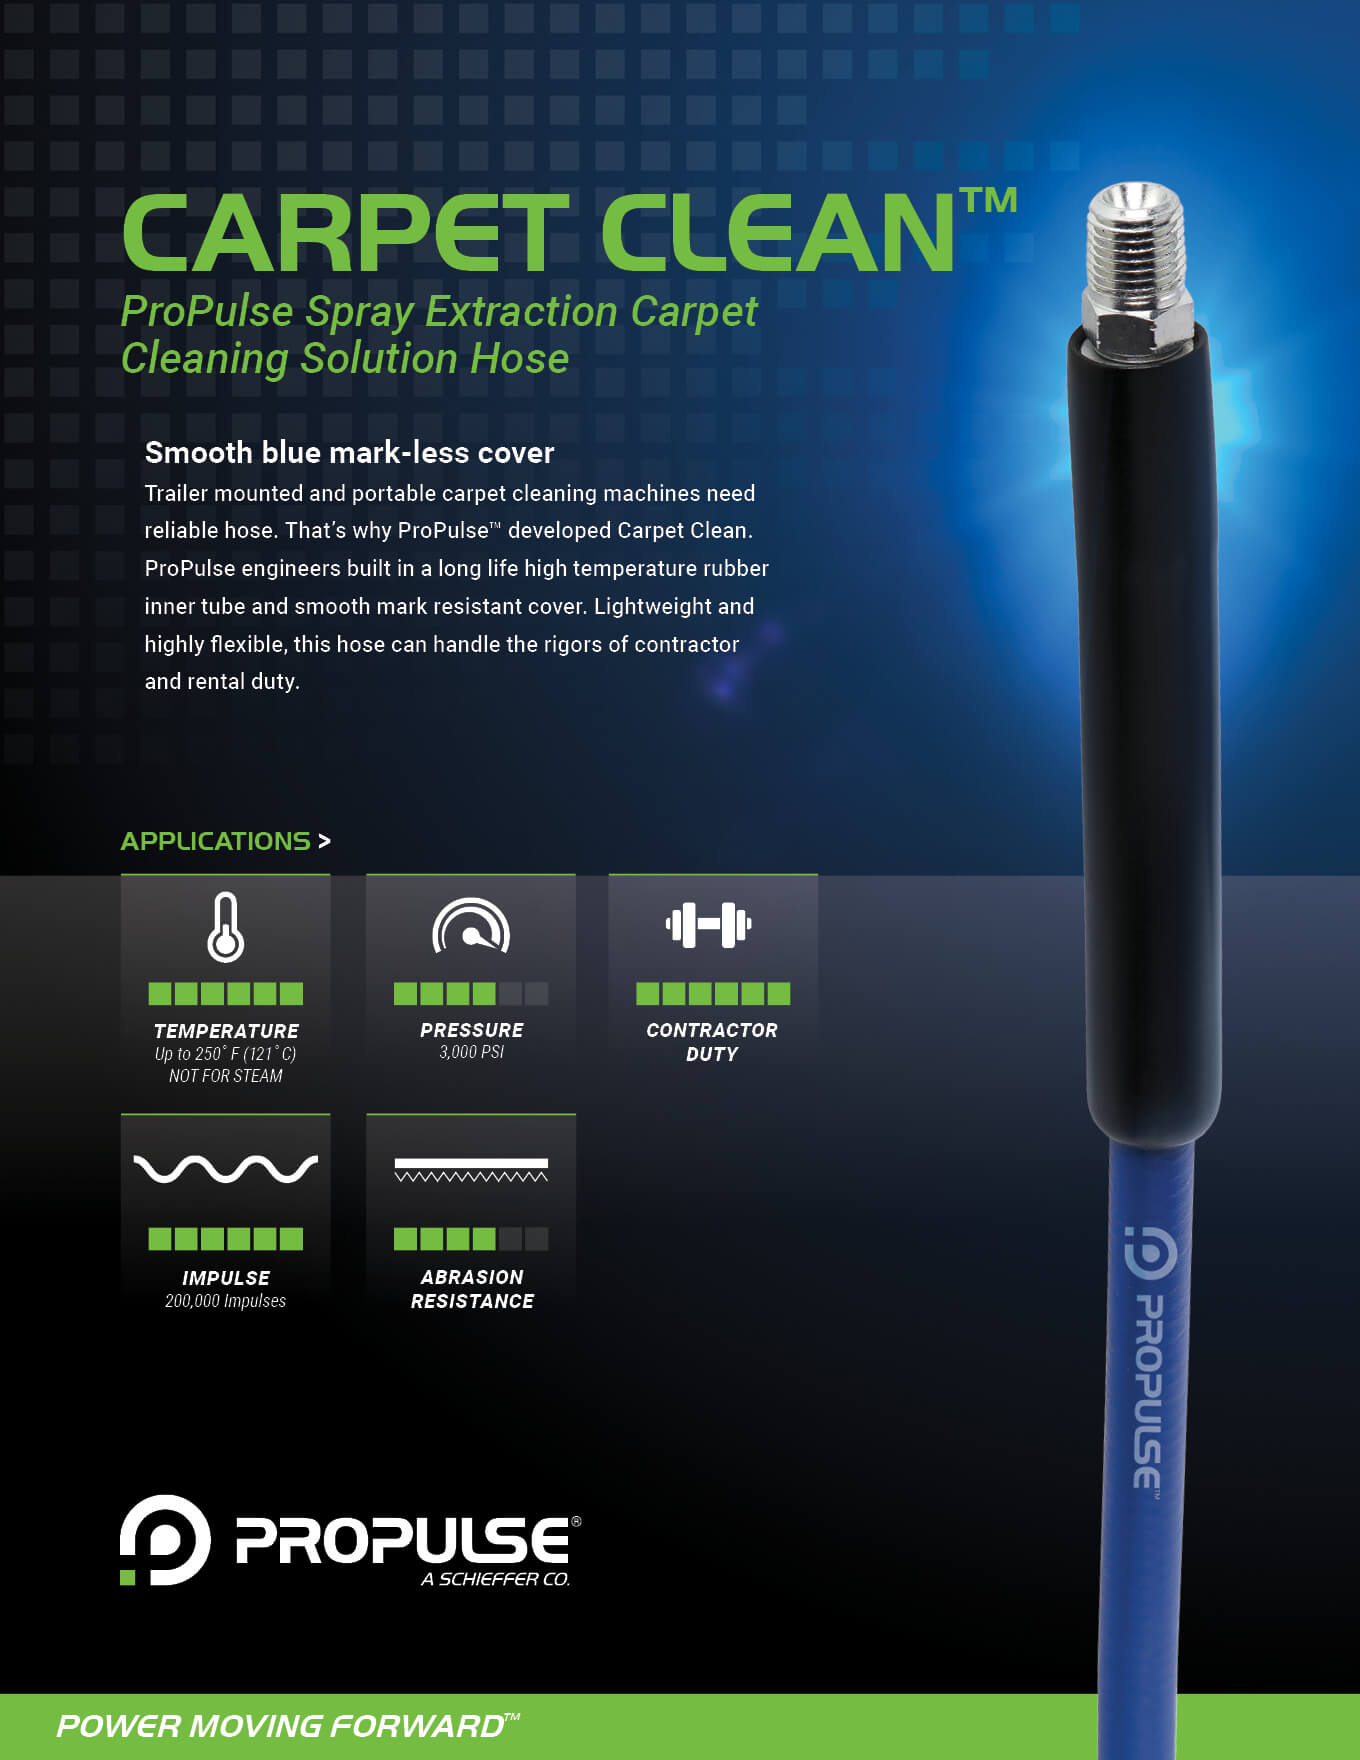 Spray Extraction Carpet Cleaning Hose